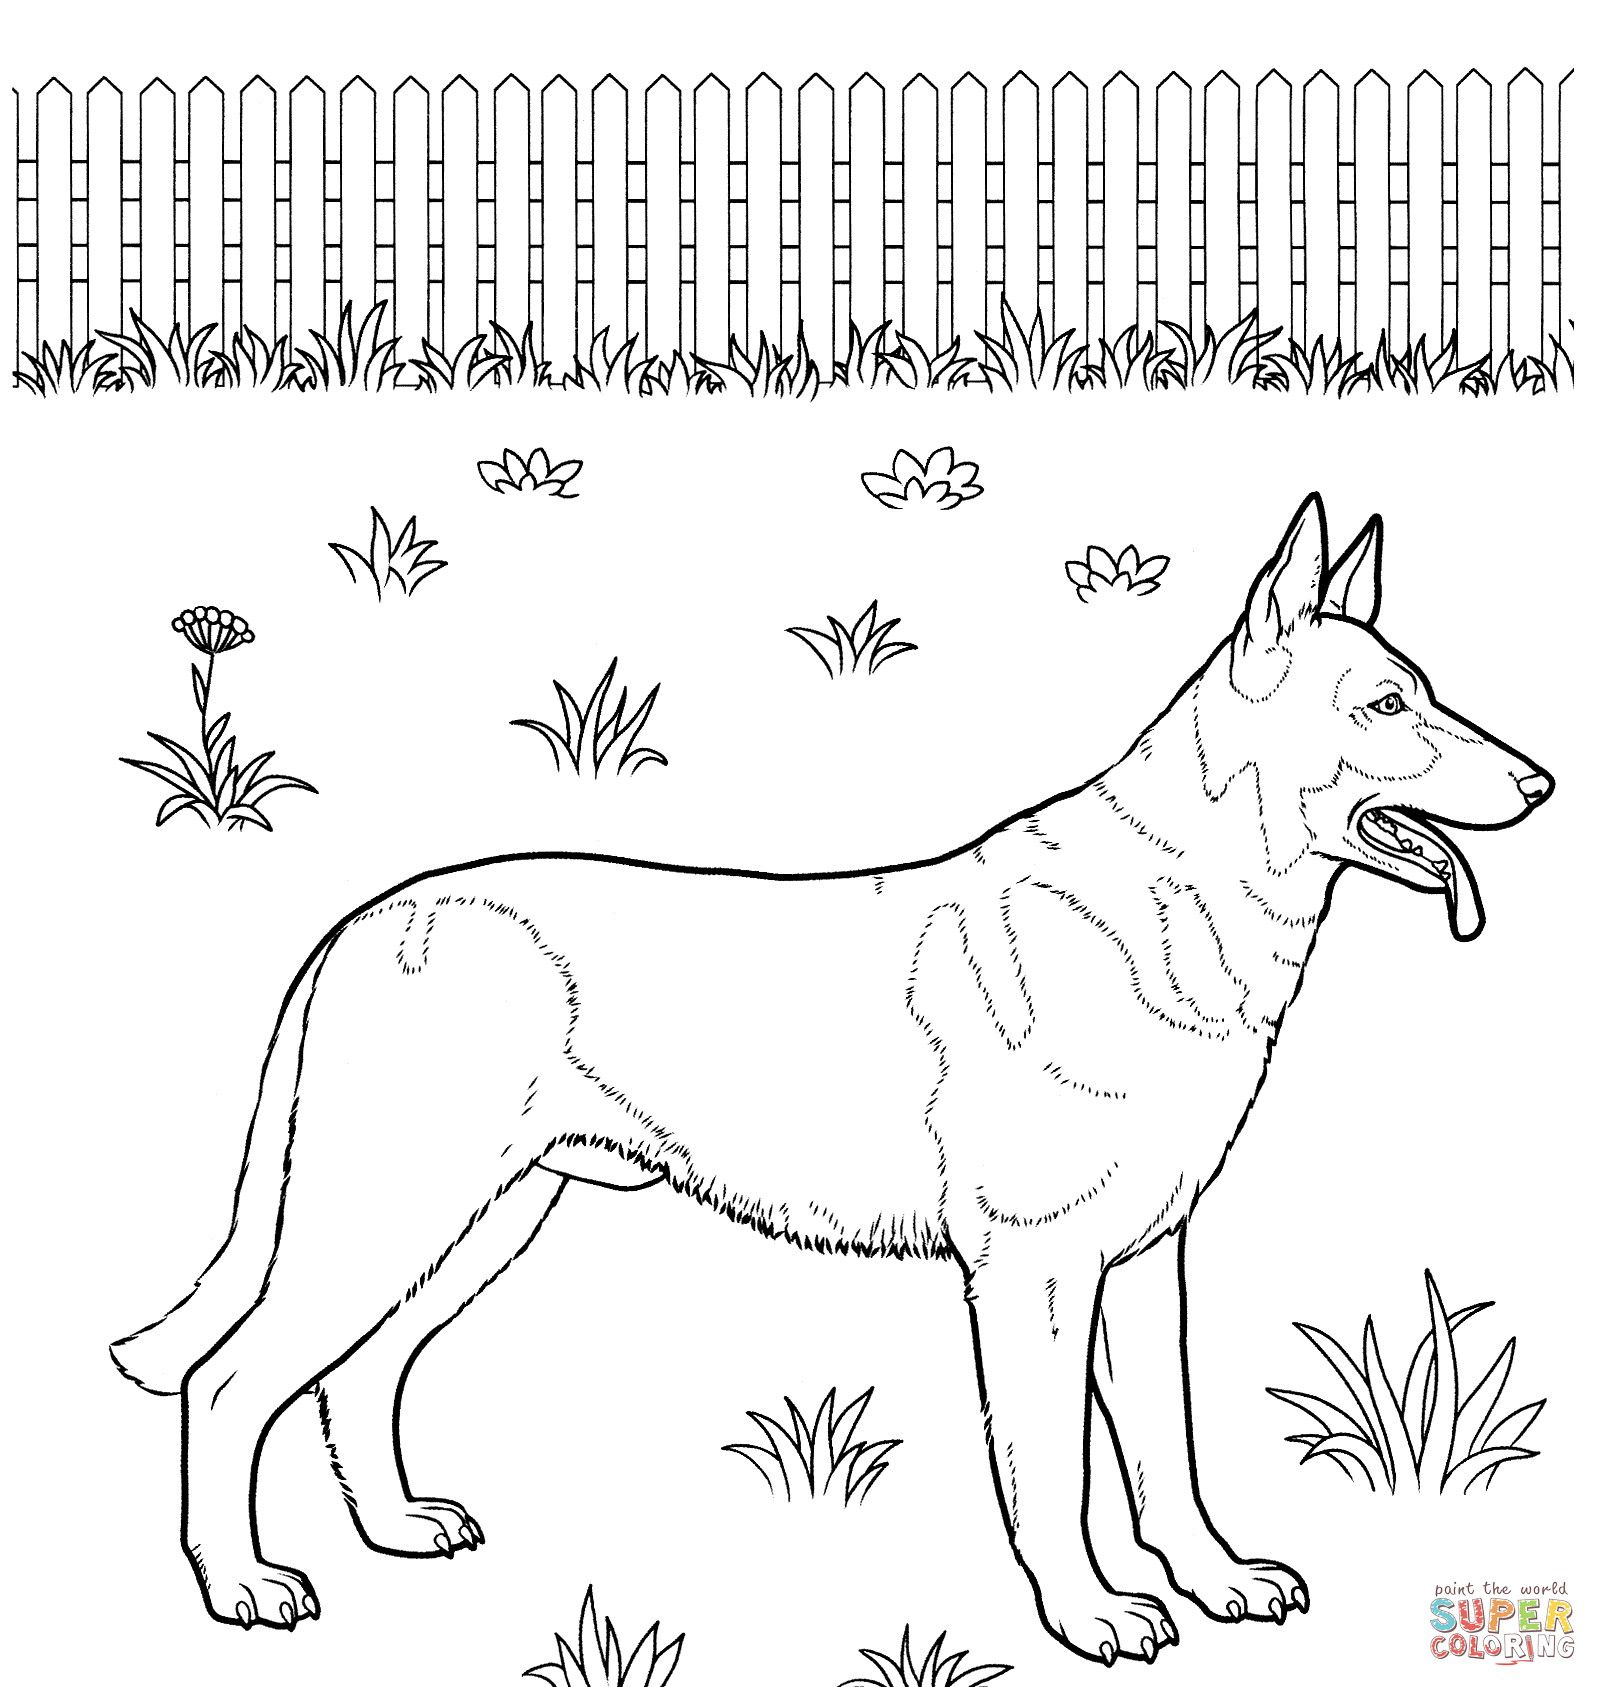 10 Images Of Dog Breed Coloring Pages Breed Coloring Images